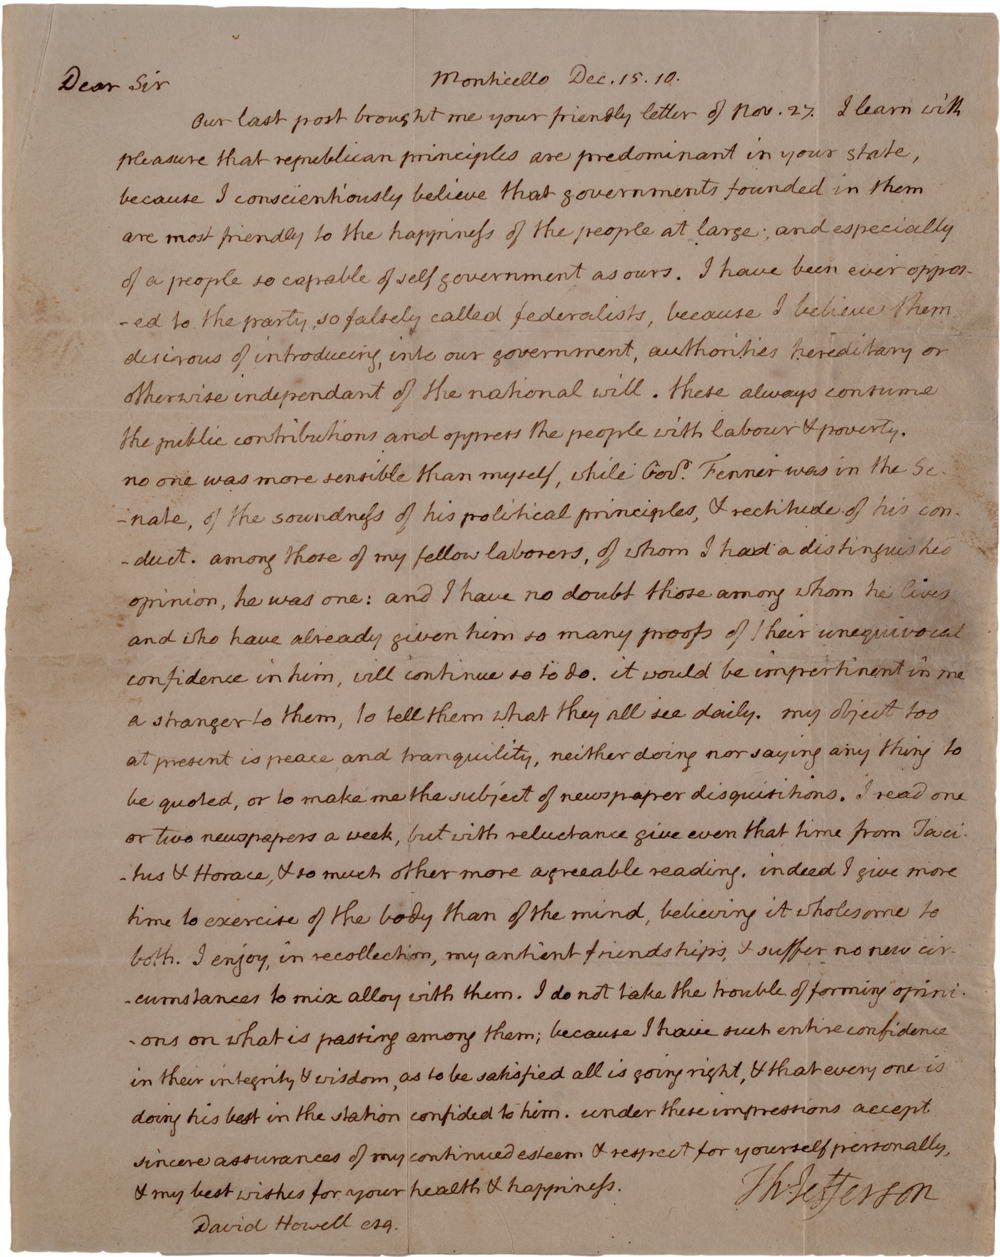 thomas jefferson s opposition to the federalists 1810 the thomas jefferson s opposition to the federalists 1810